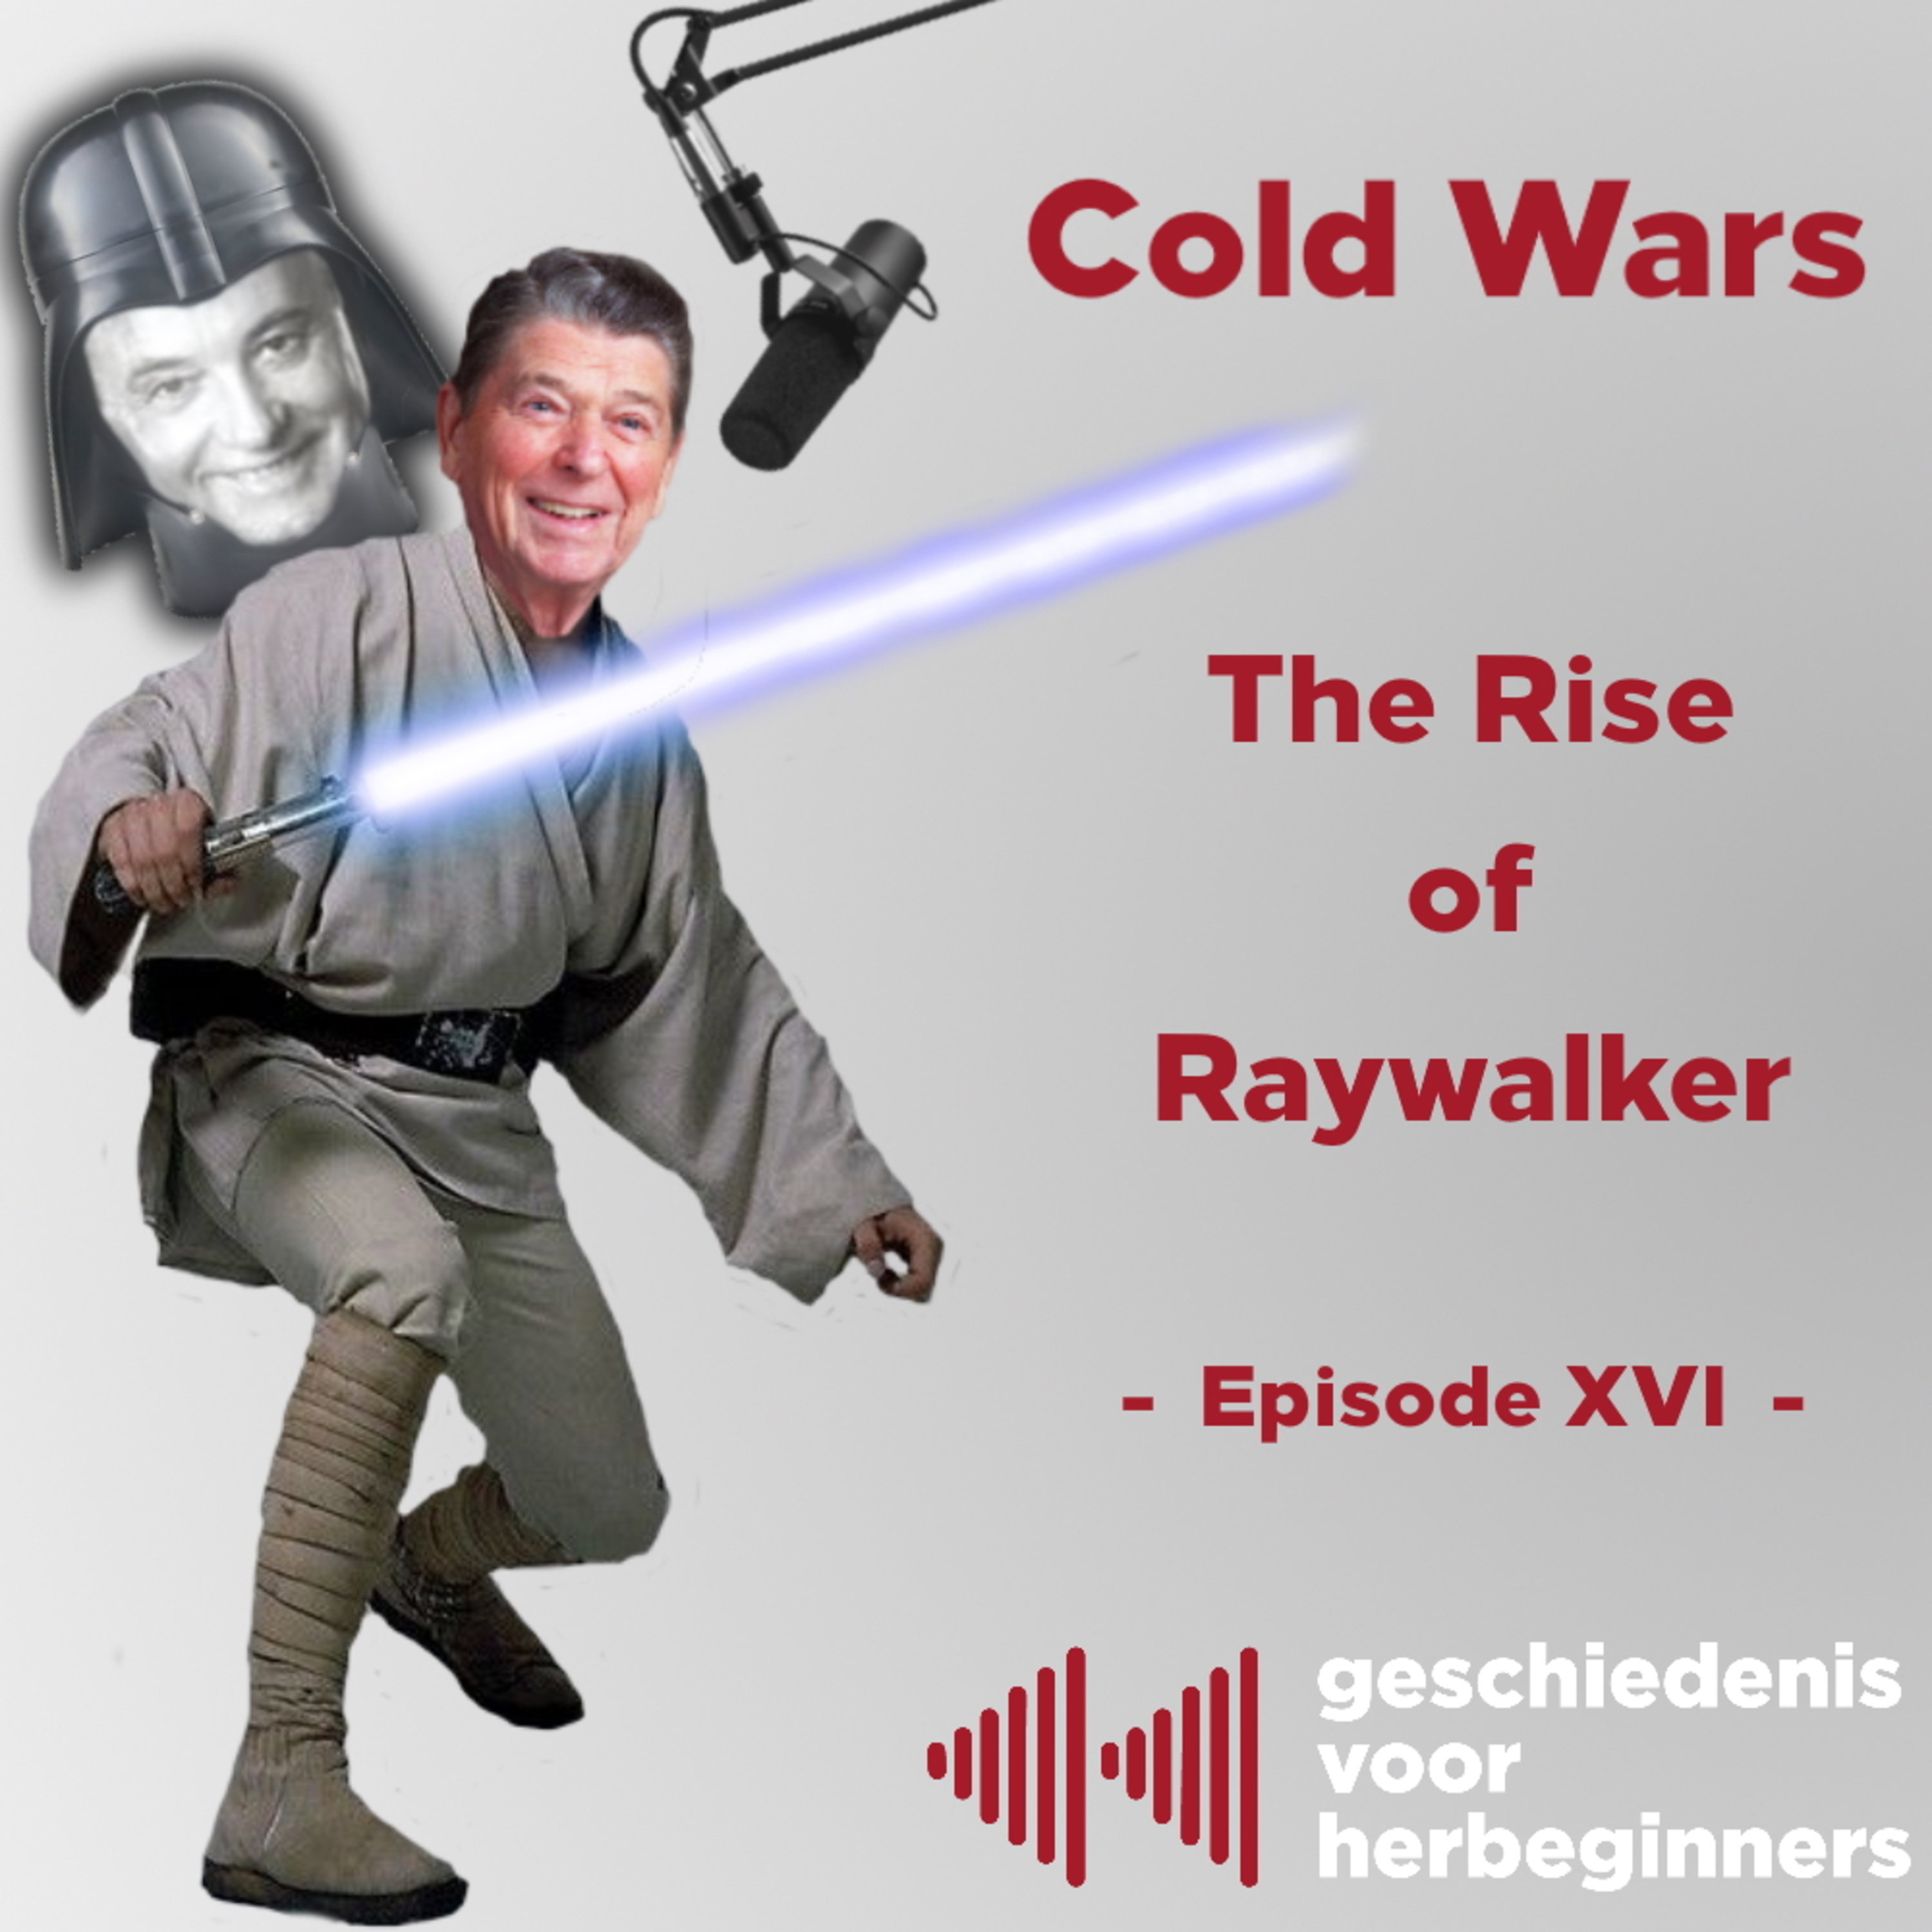 6.16 - Cold Wars: The Rise of Raywalker (Episode XVI)